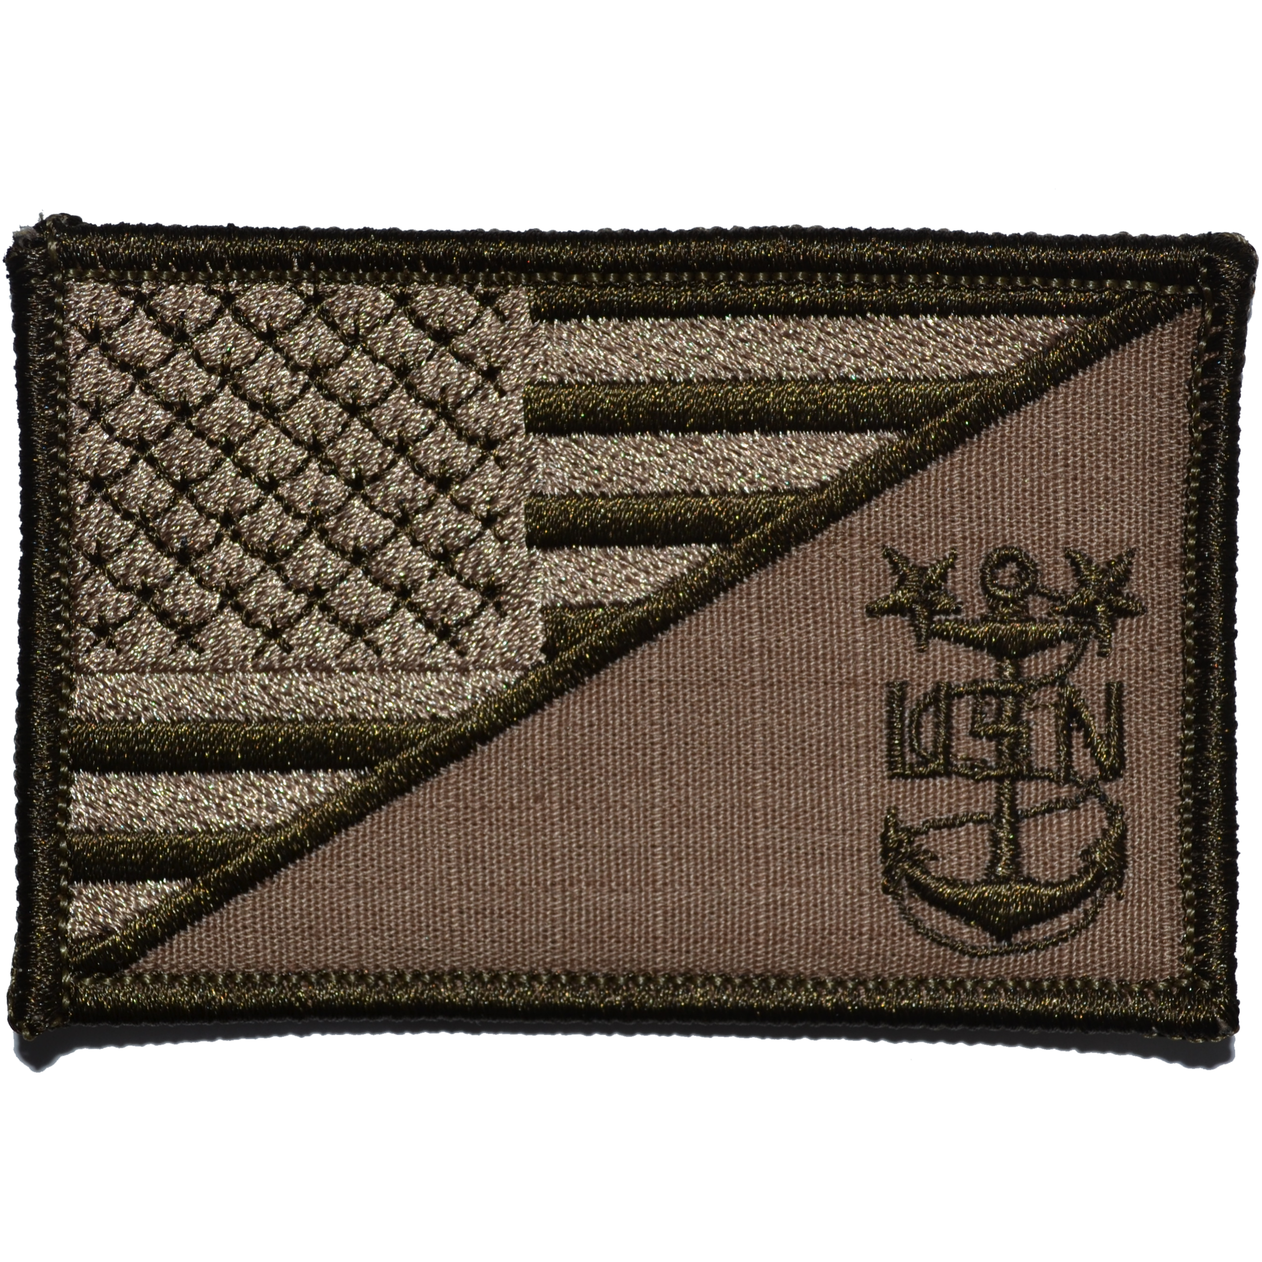 Navy MCPO Master Chief Petty Officer USA Flag - 2.25x3.5 inch Patch